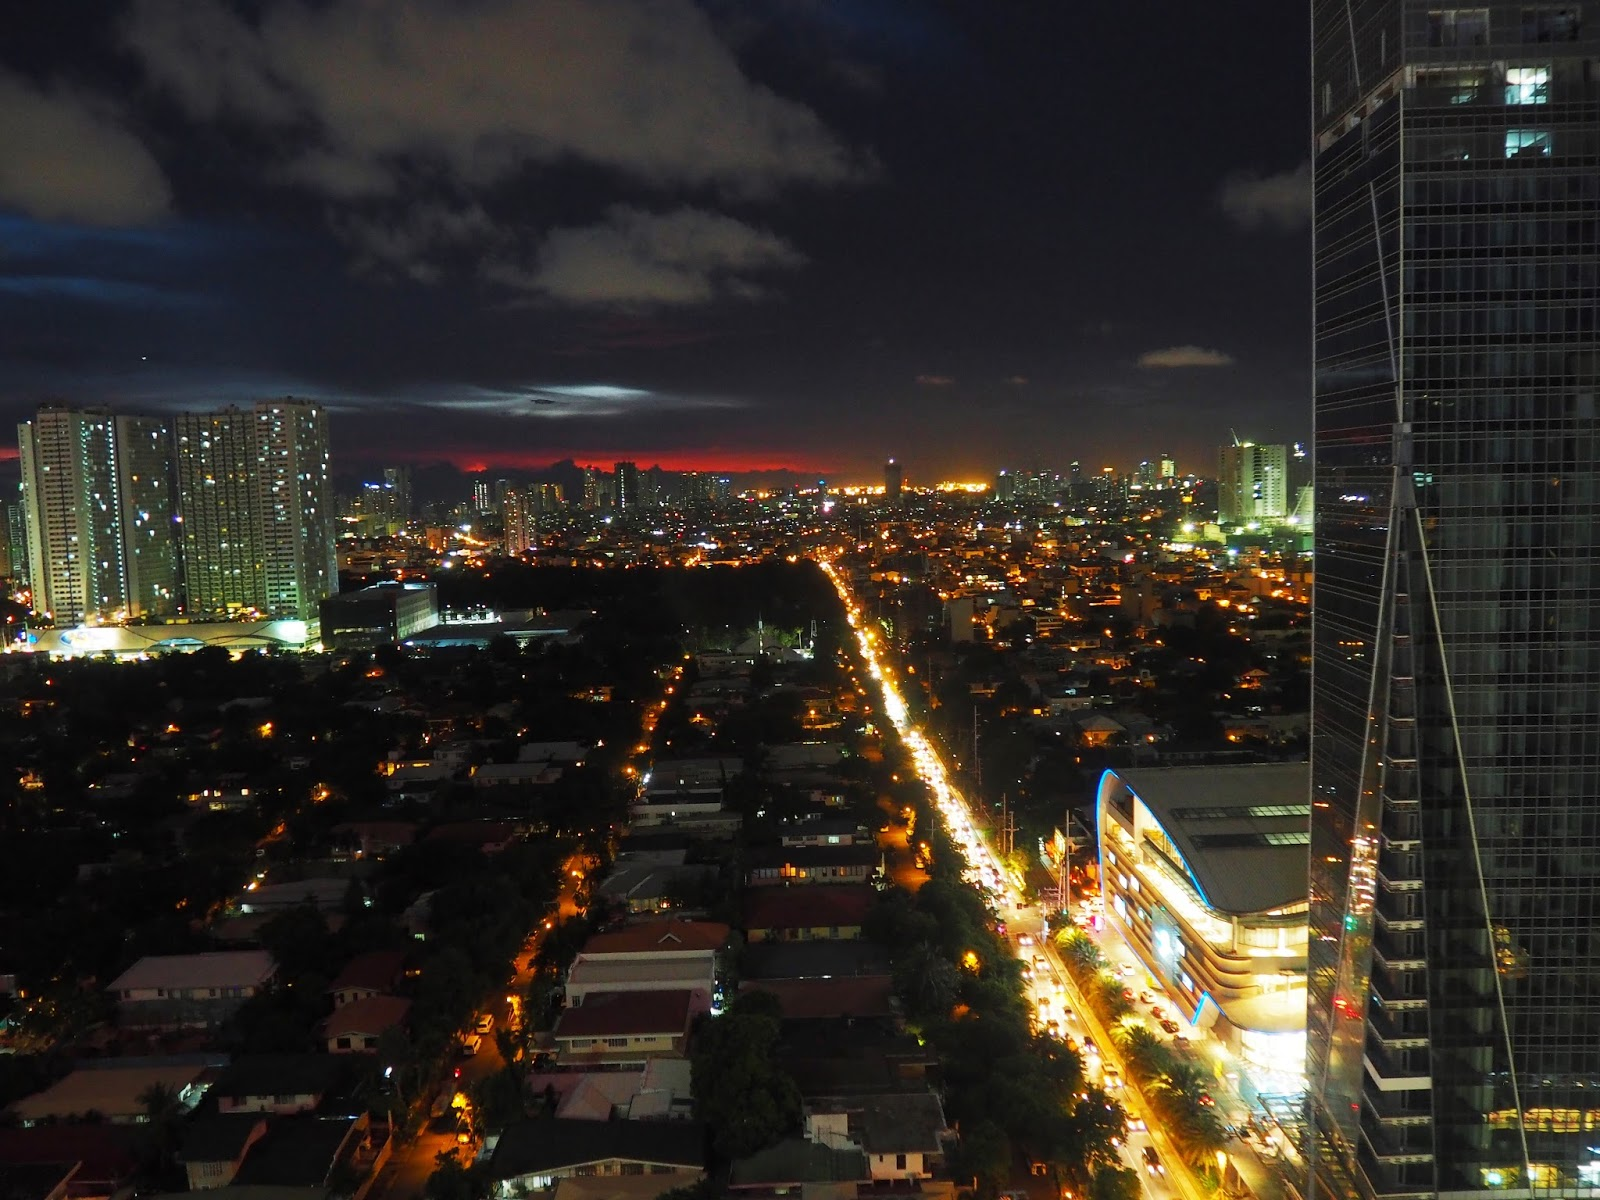 Vinatraveler S Blog City Garden Hotel Makati An Affordable And Fantastic Hotel To Stay In Makati